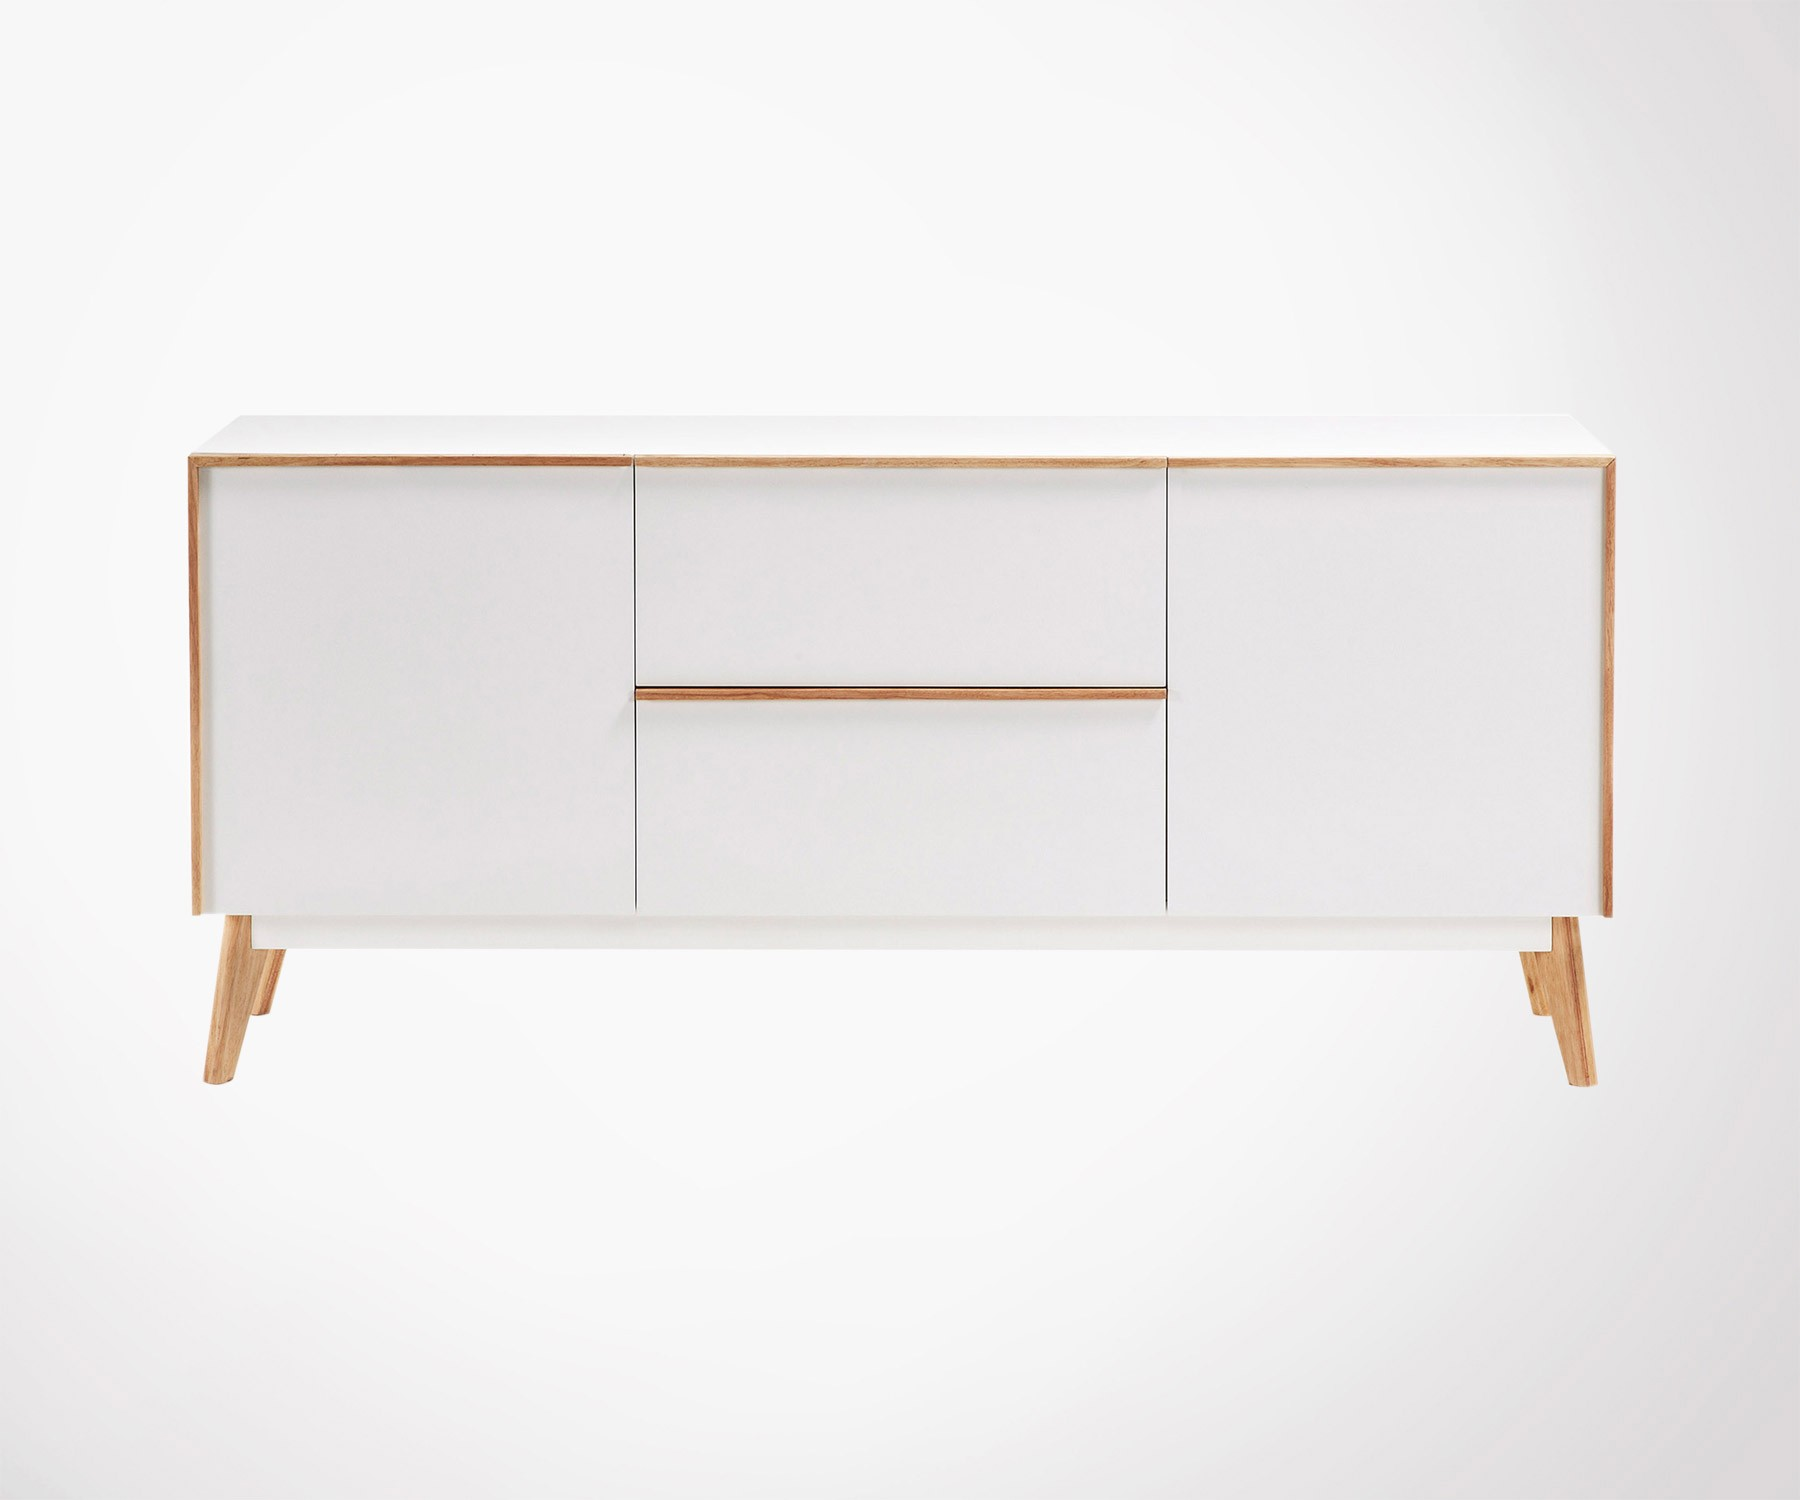 Design Sideboards For All The Interiors Meubles Et Design # Meuble Bas Tv Design